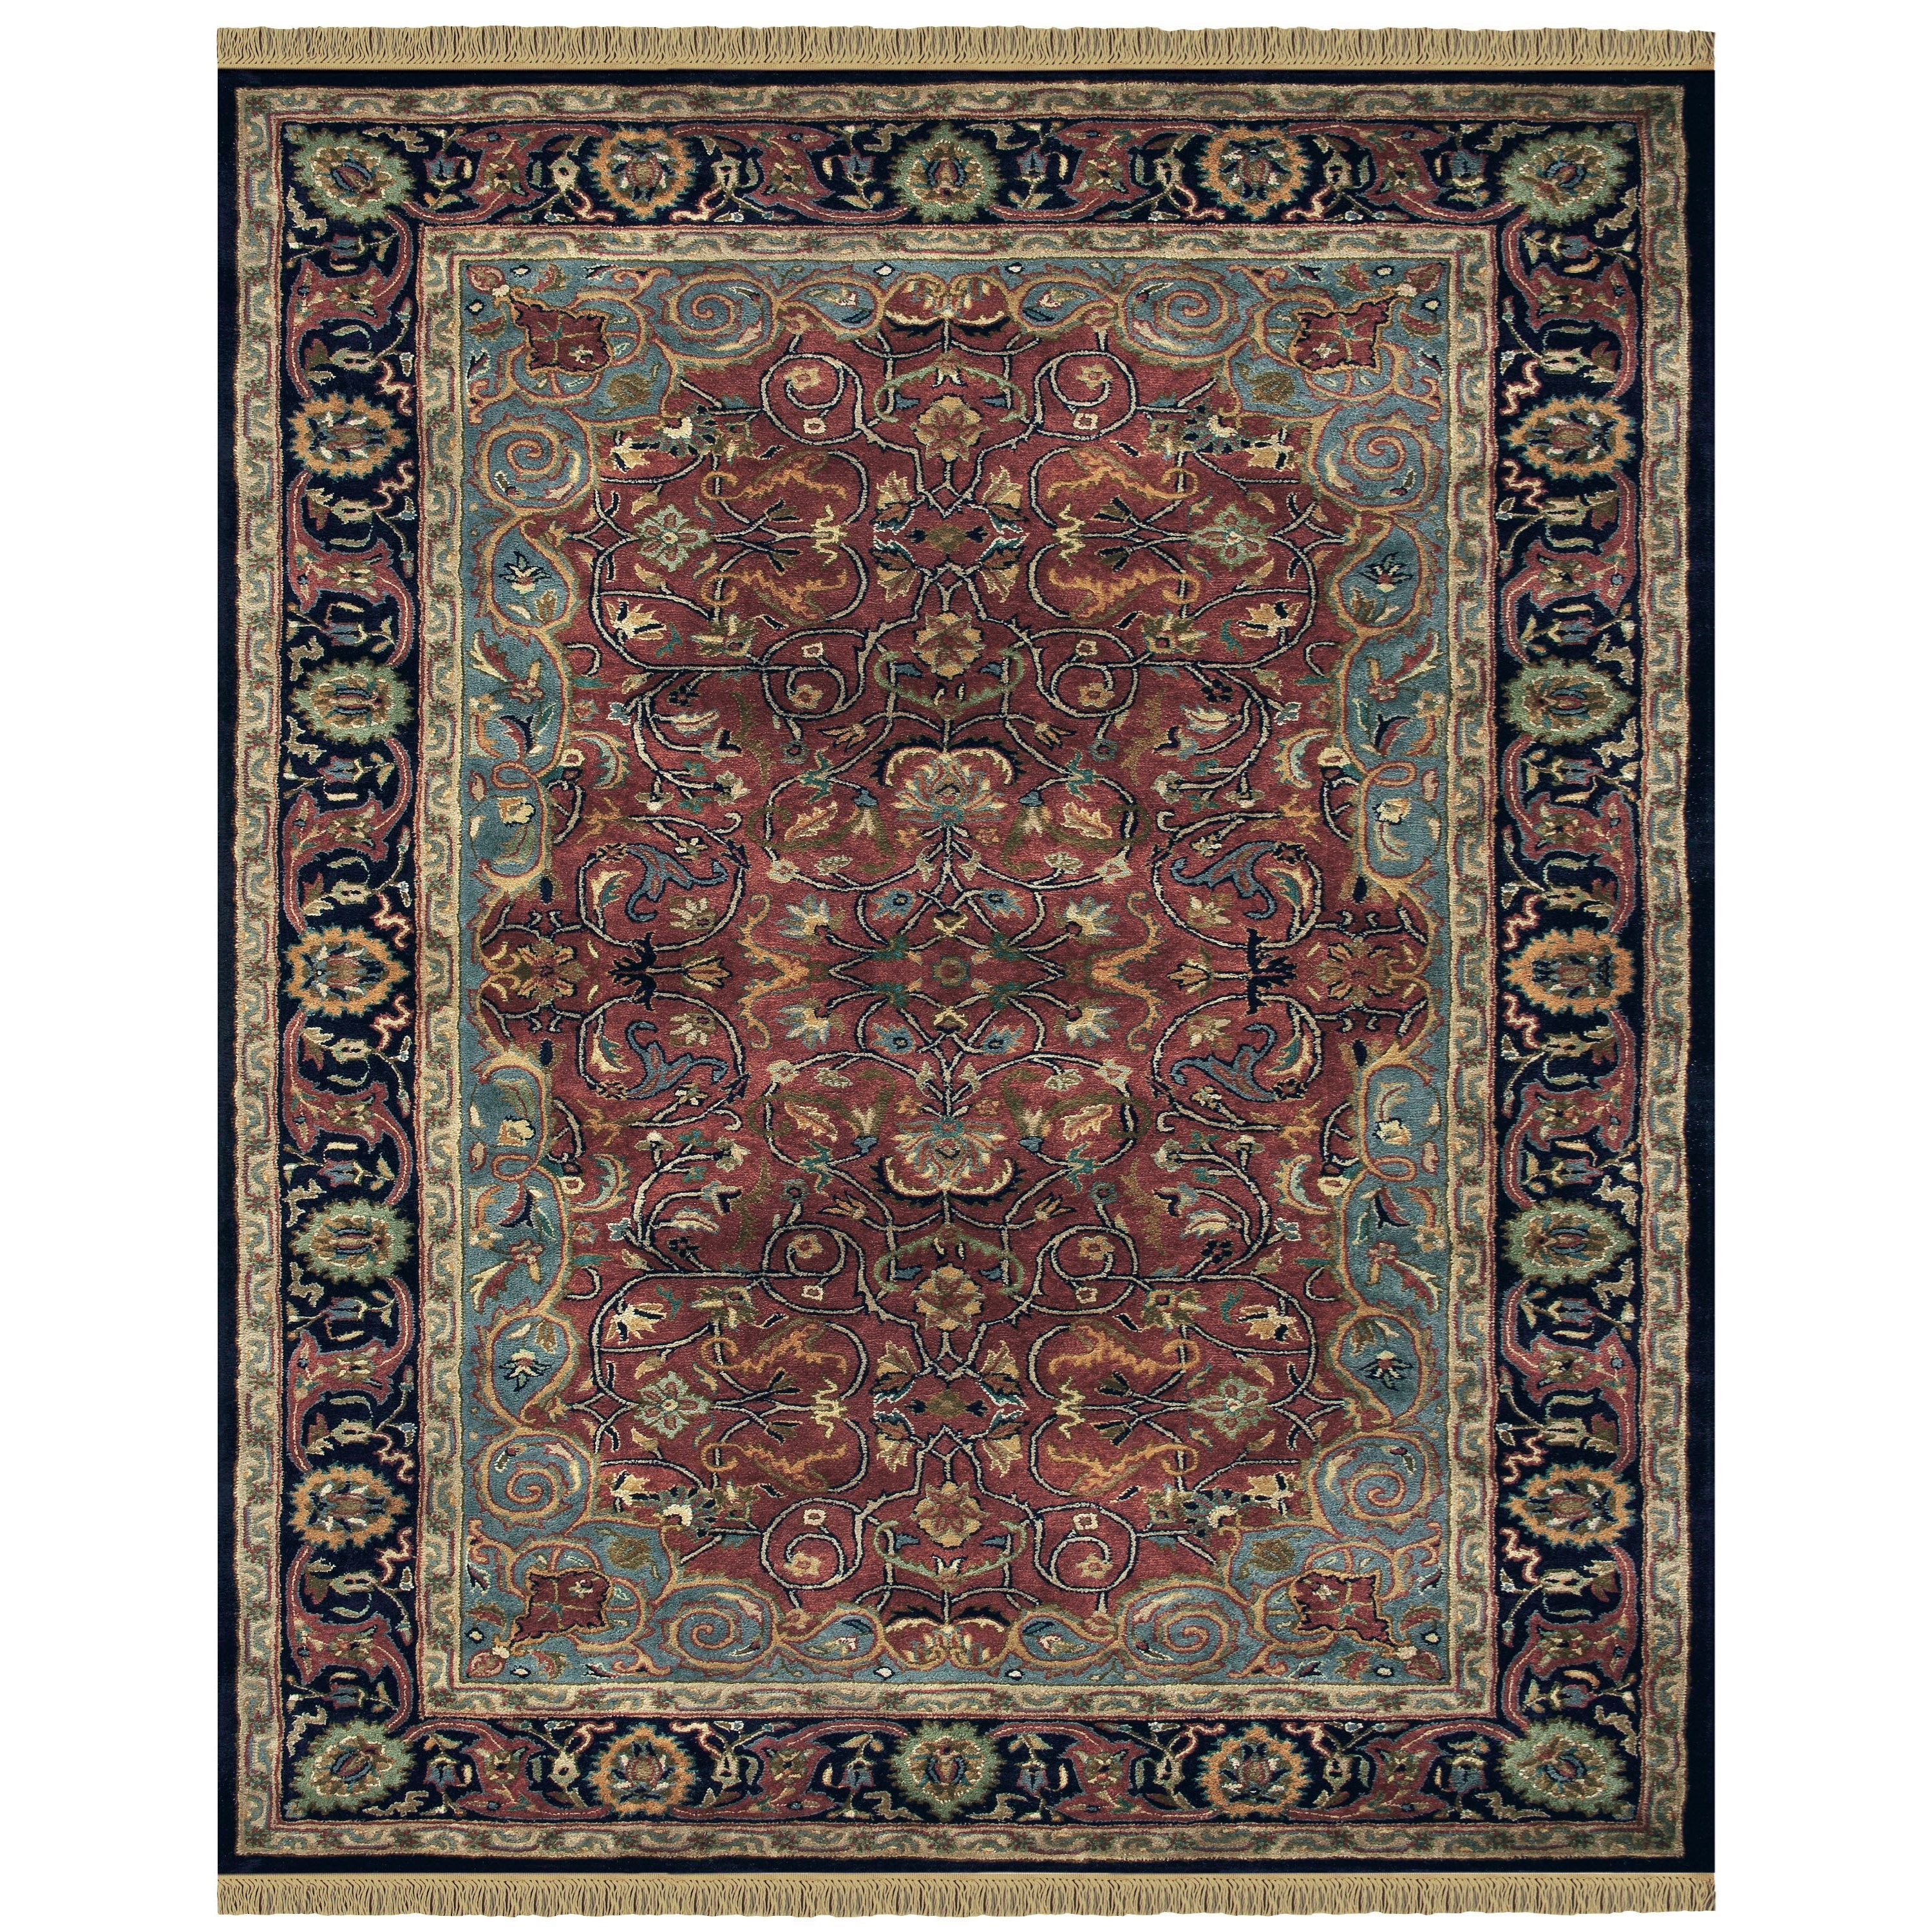 Amore Plum 5' x 8' Area Rug by Feizy Rugs at Sprintz Furniture